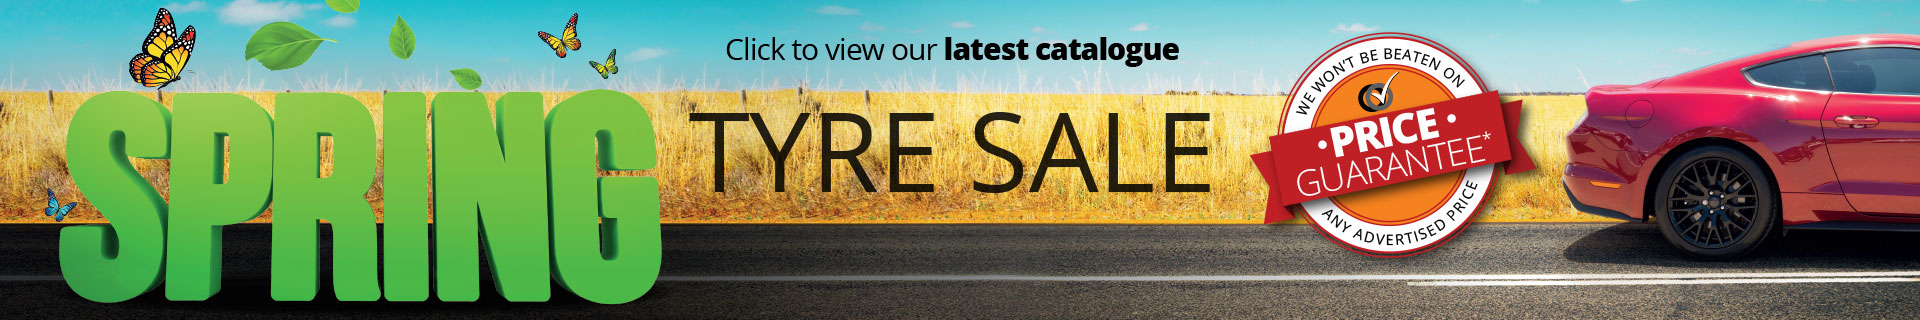 Tyreright Catalogue Out Now!